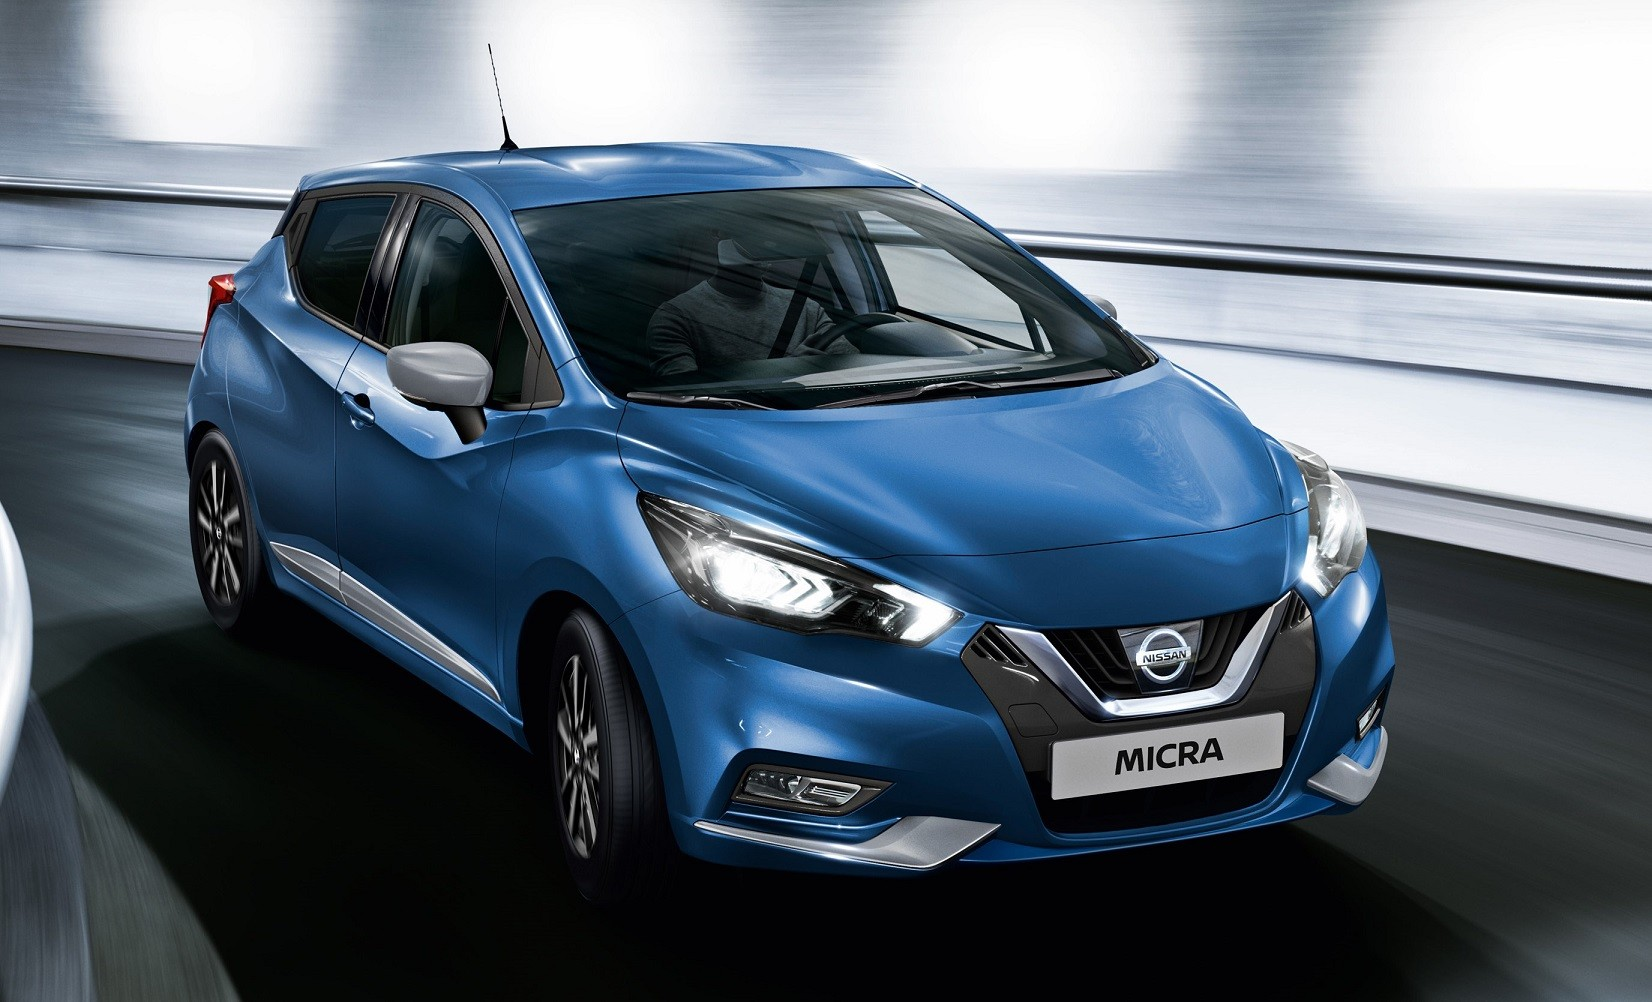 Iconic Nissan Micra gets a refresh